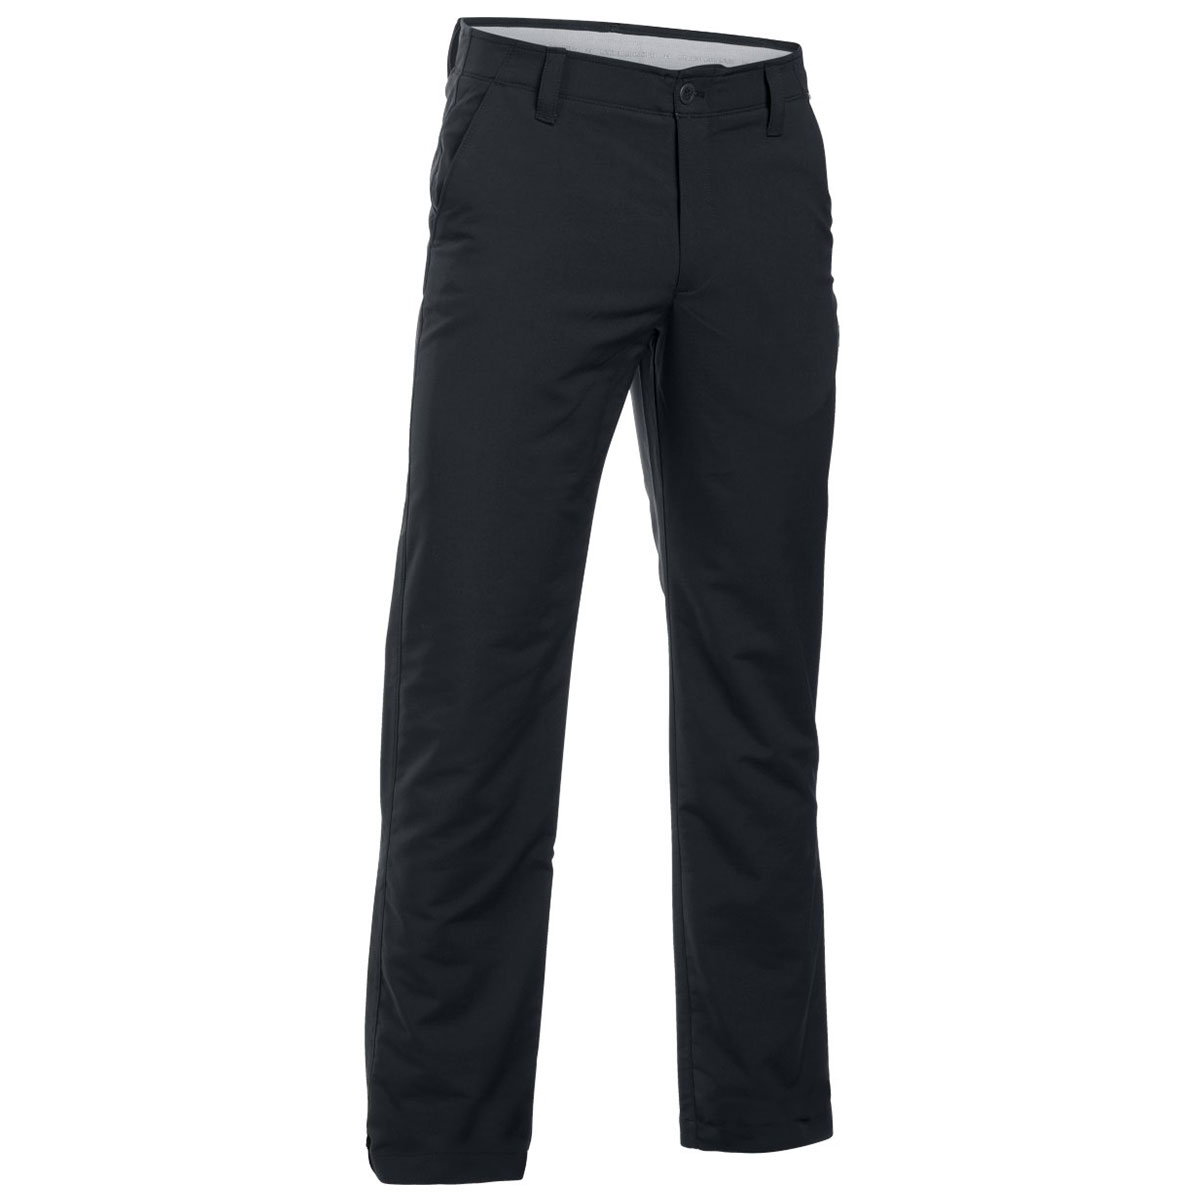 Under-Armour-Mens-UA-Matchplay-Pant-Soft-Stretch-Golf-Trousers-34-OFF-RRP miniatuur 11